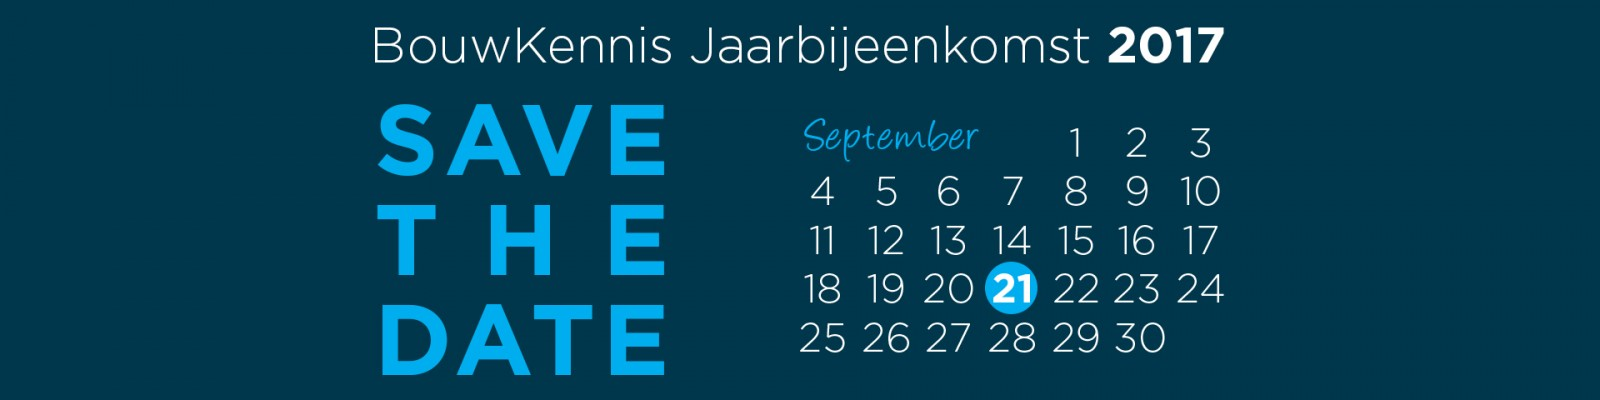 Banner-save-the-date-1920x480